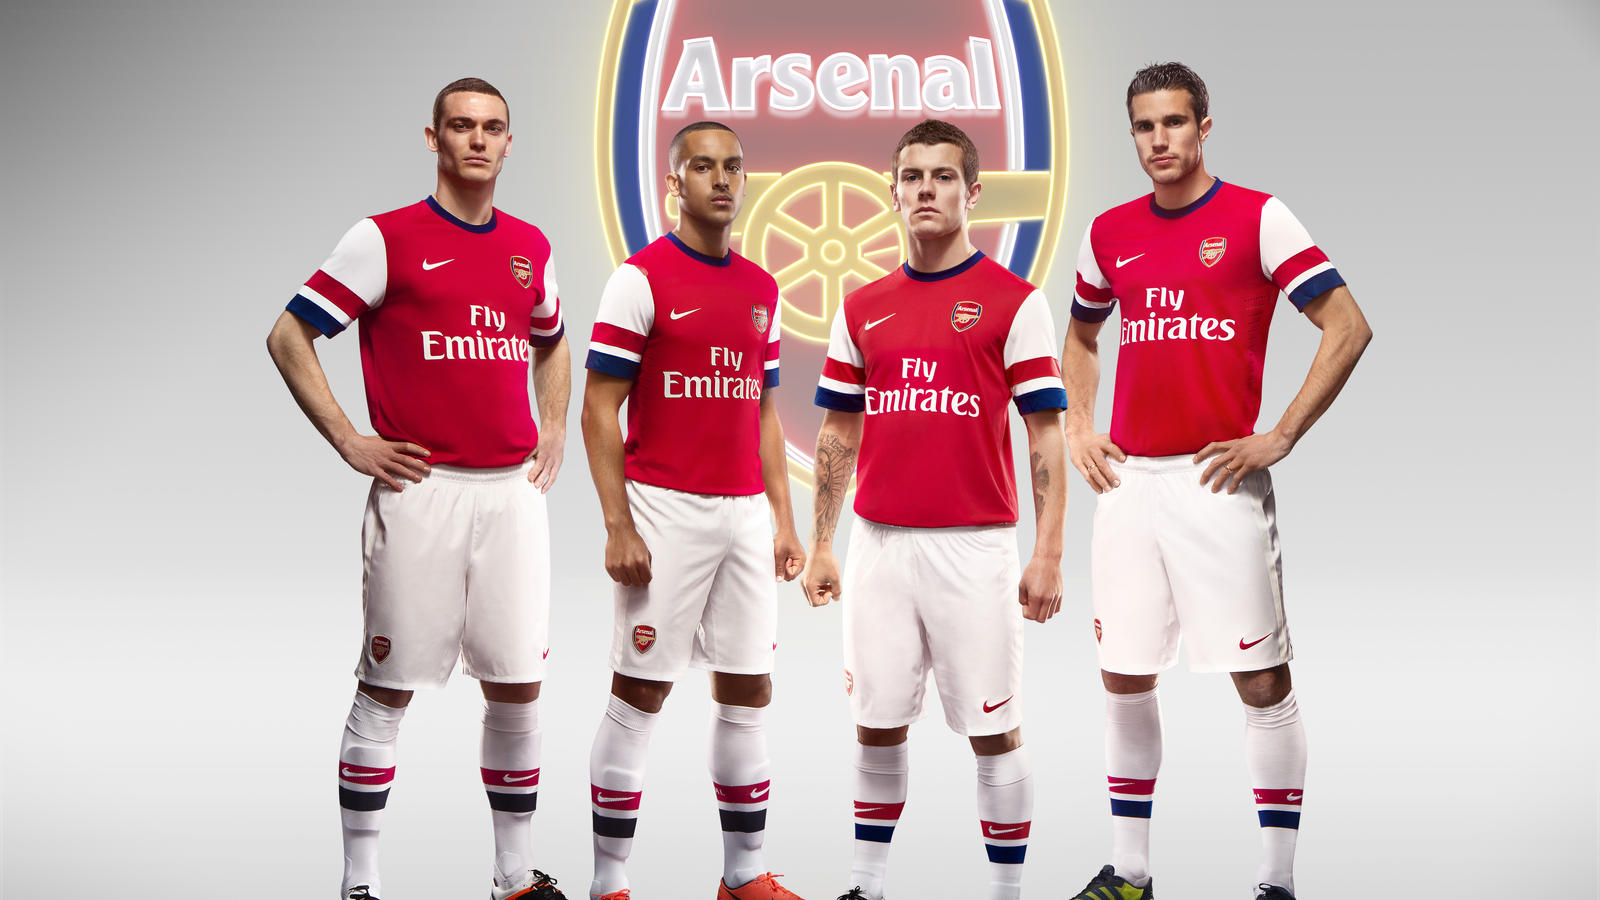 new product e8b14 7aa19 Nike Football Unveils Arsenal Home Kit for Season 2012/13 ...